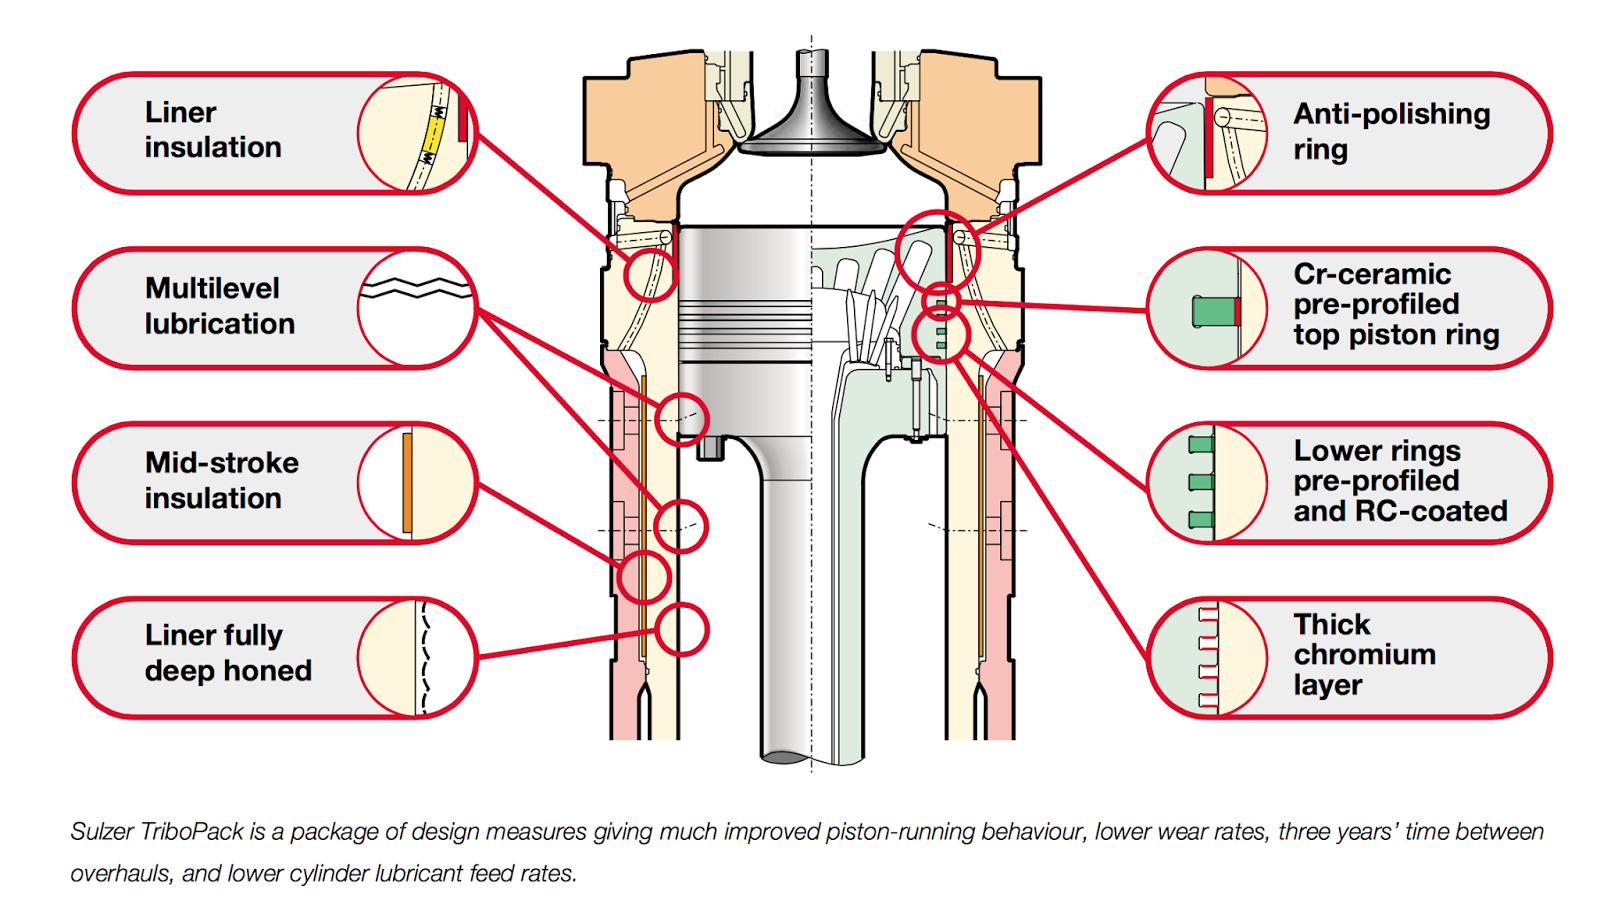 meo class questions and answers  the design measures incorporated in tribopack are